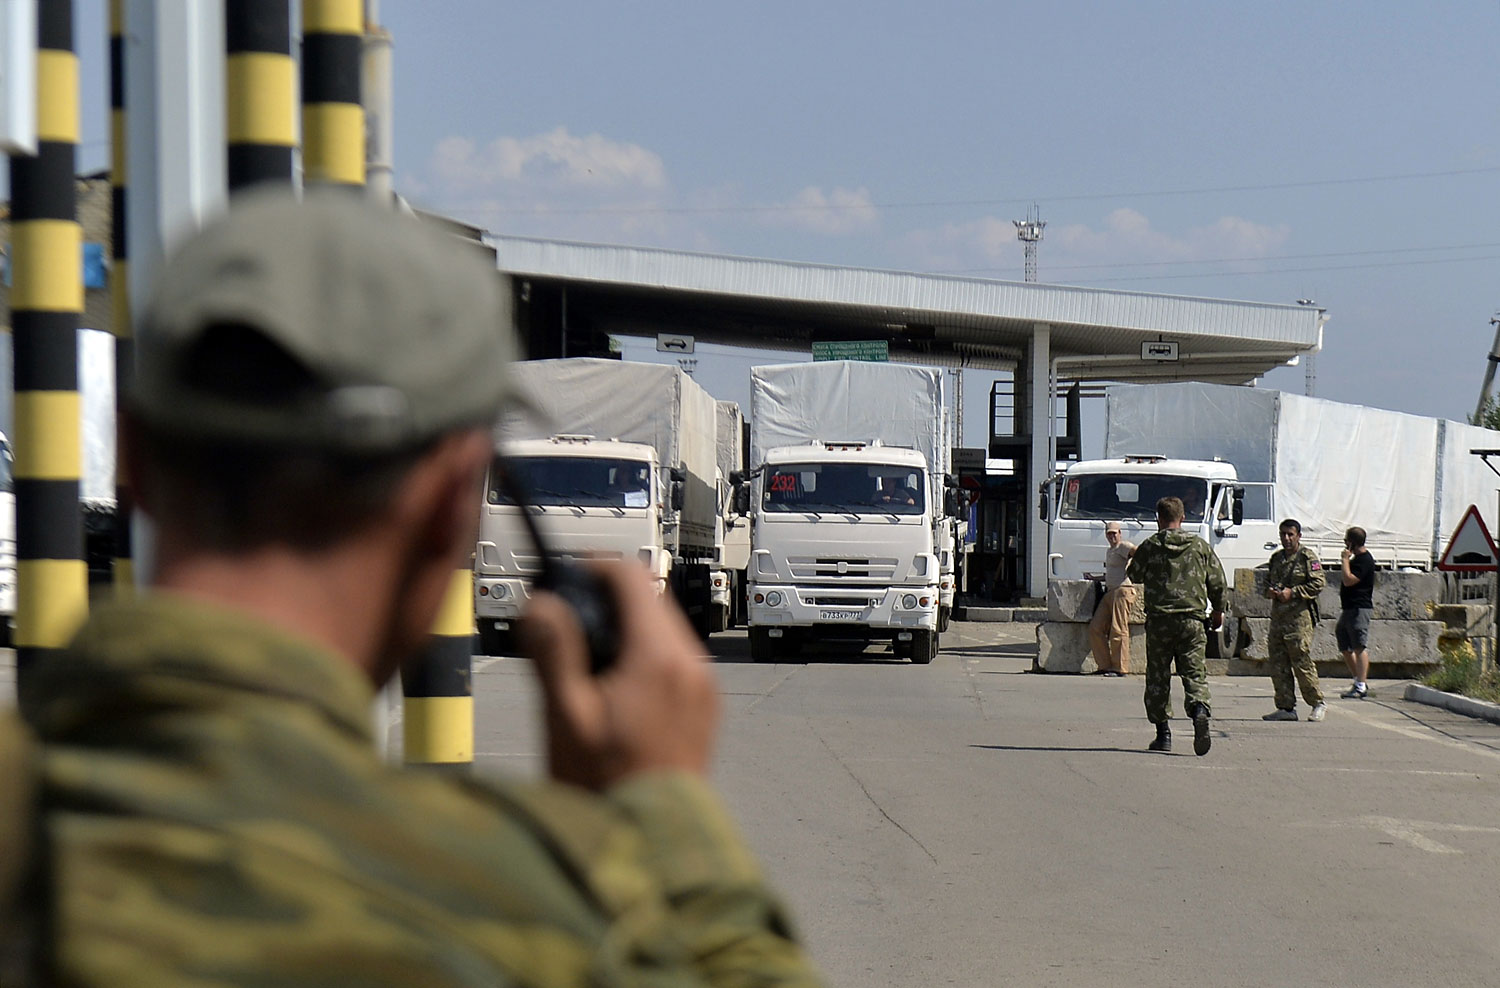 A Russian convoy crosses the Russian-Ukrainian border at the Izvarino checkpoint on Aug. 22, 2014